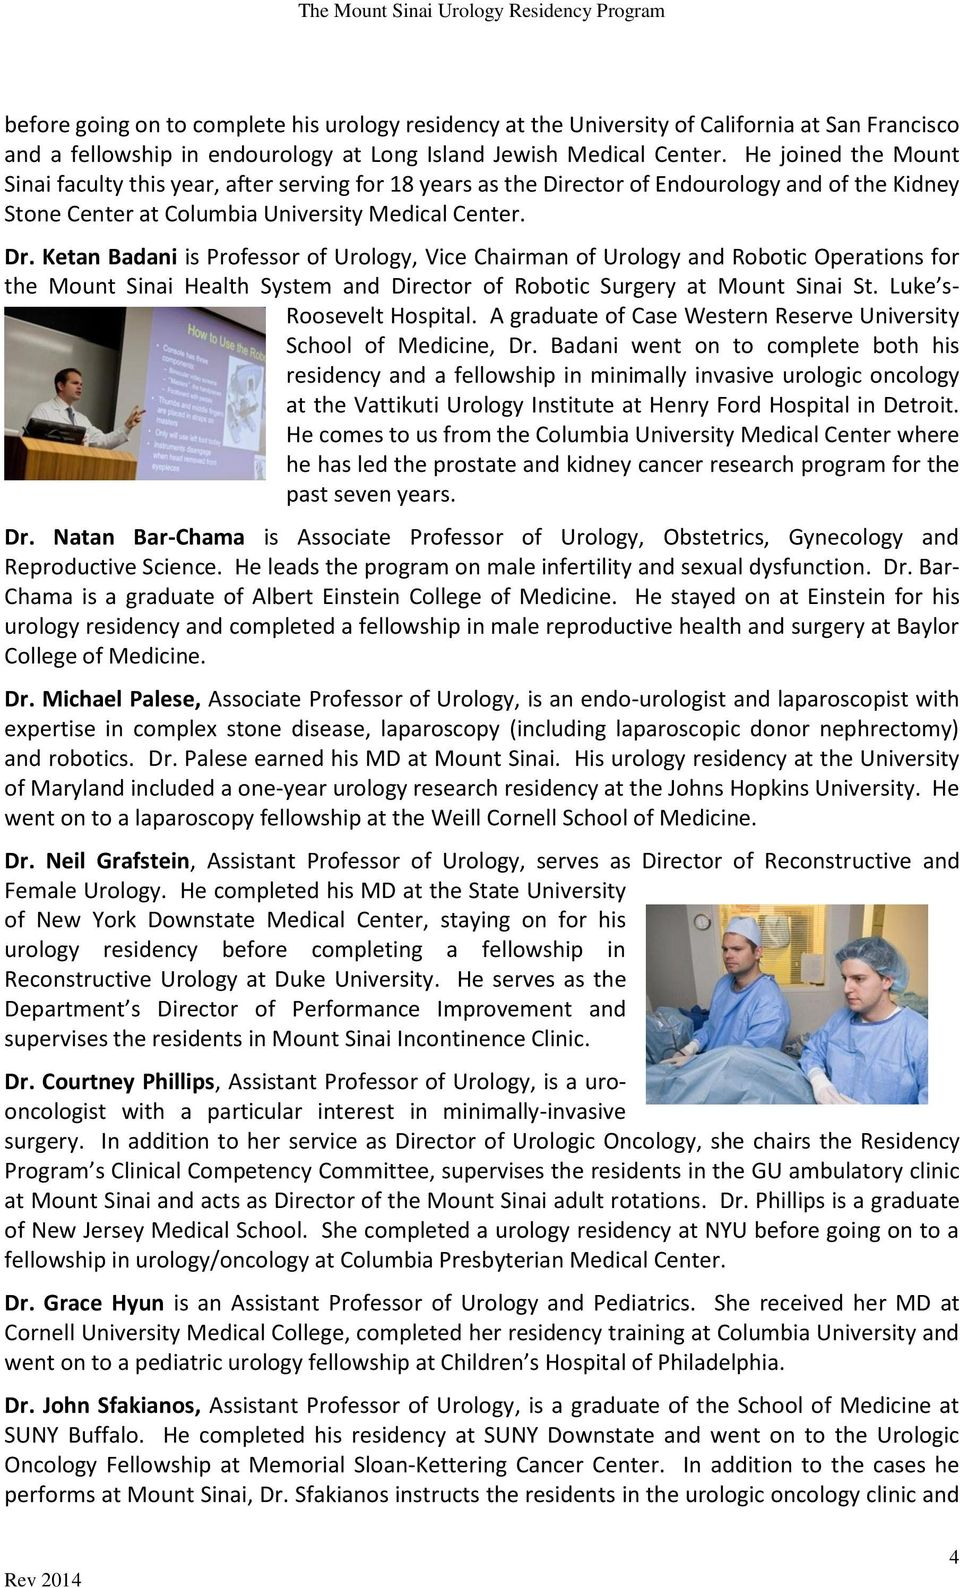 THE UROLOGY RESIDENCY PROGRAM OF THE ICAHN SCHOOL OF MEDICINE AT